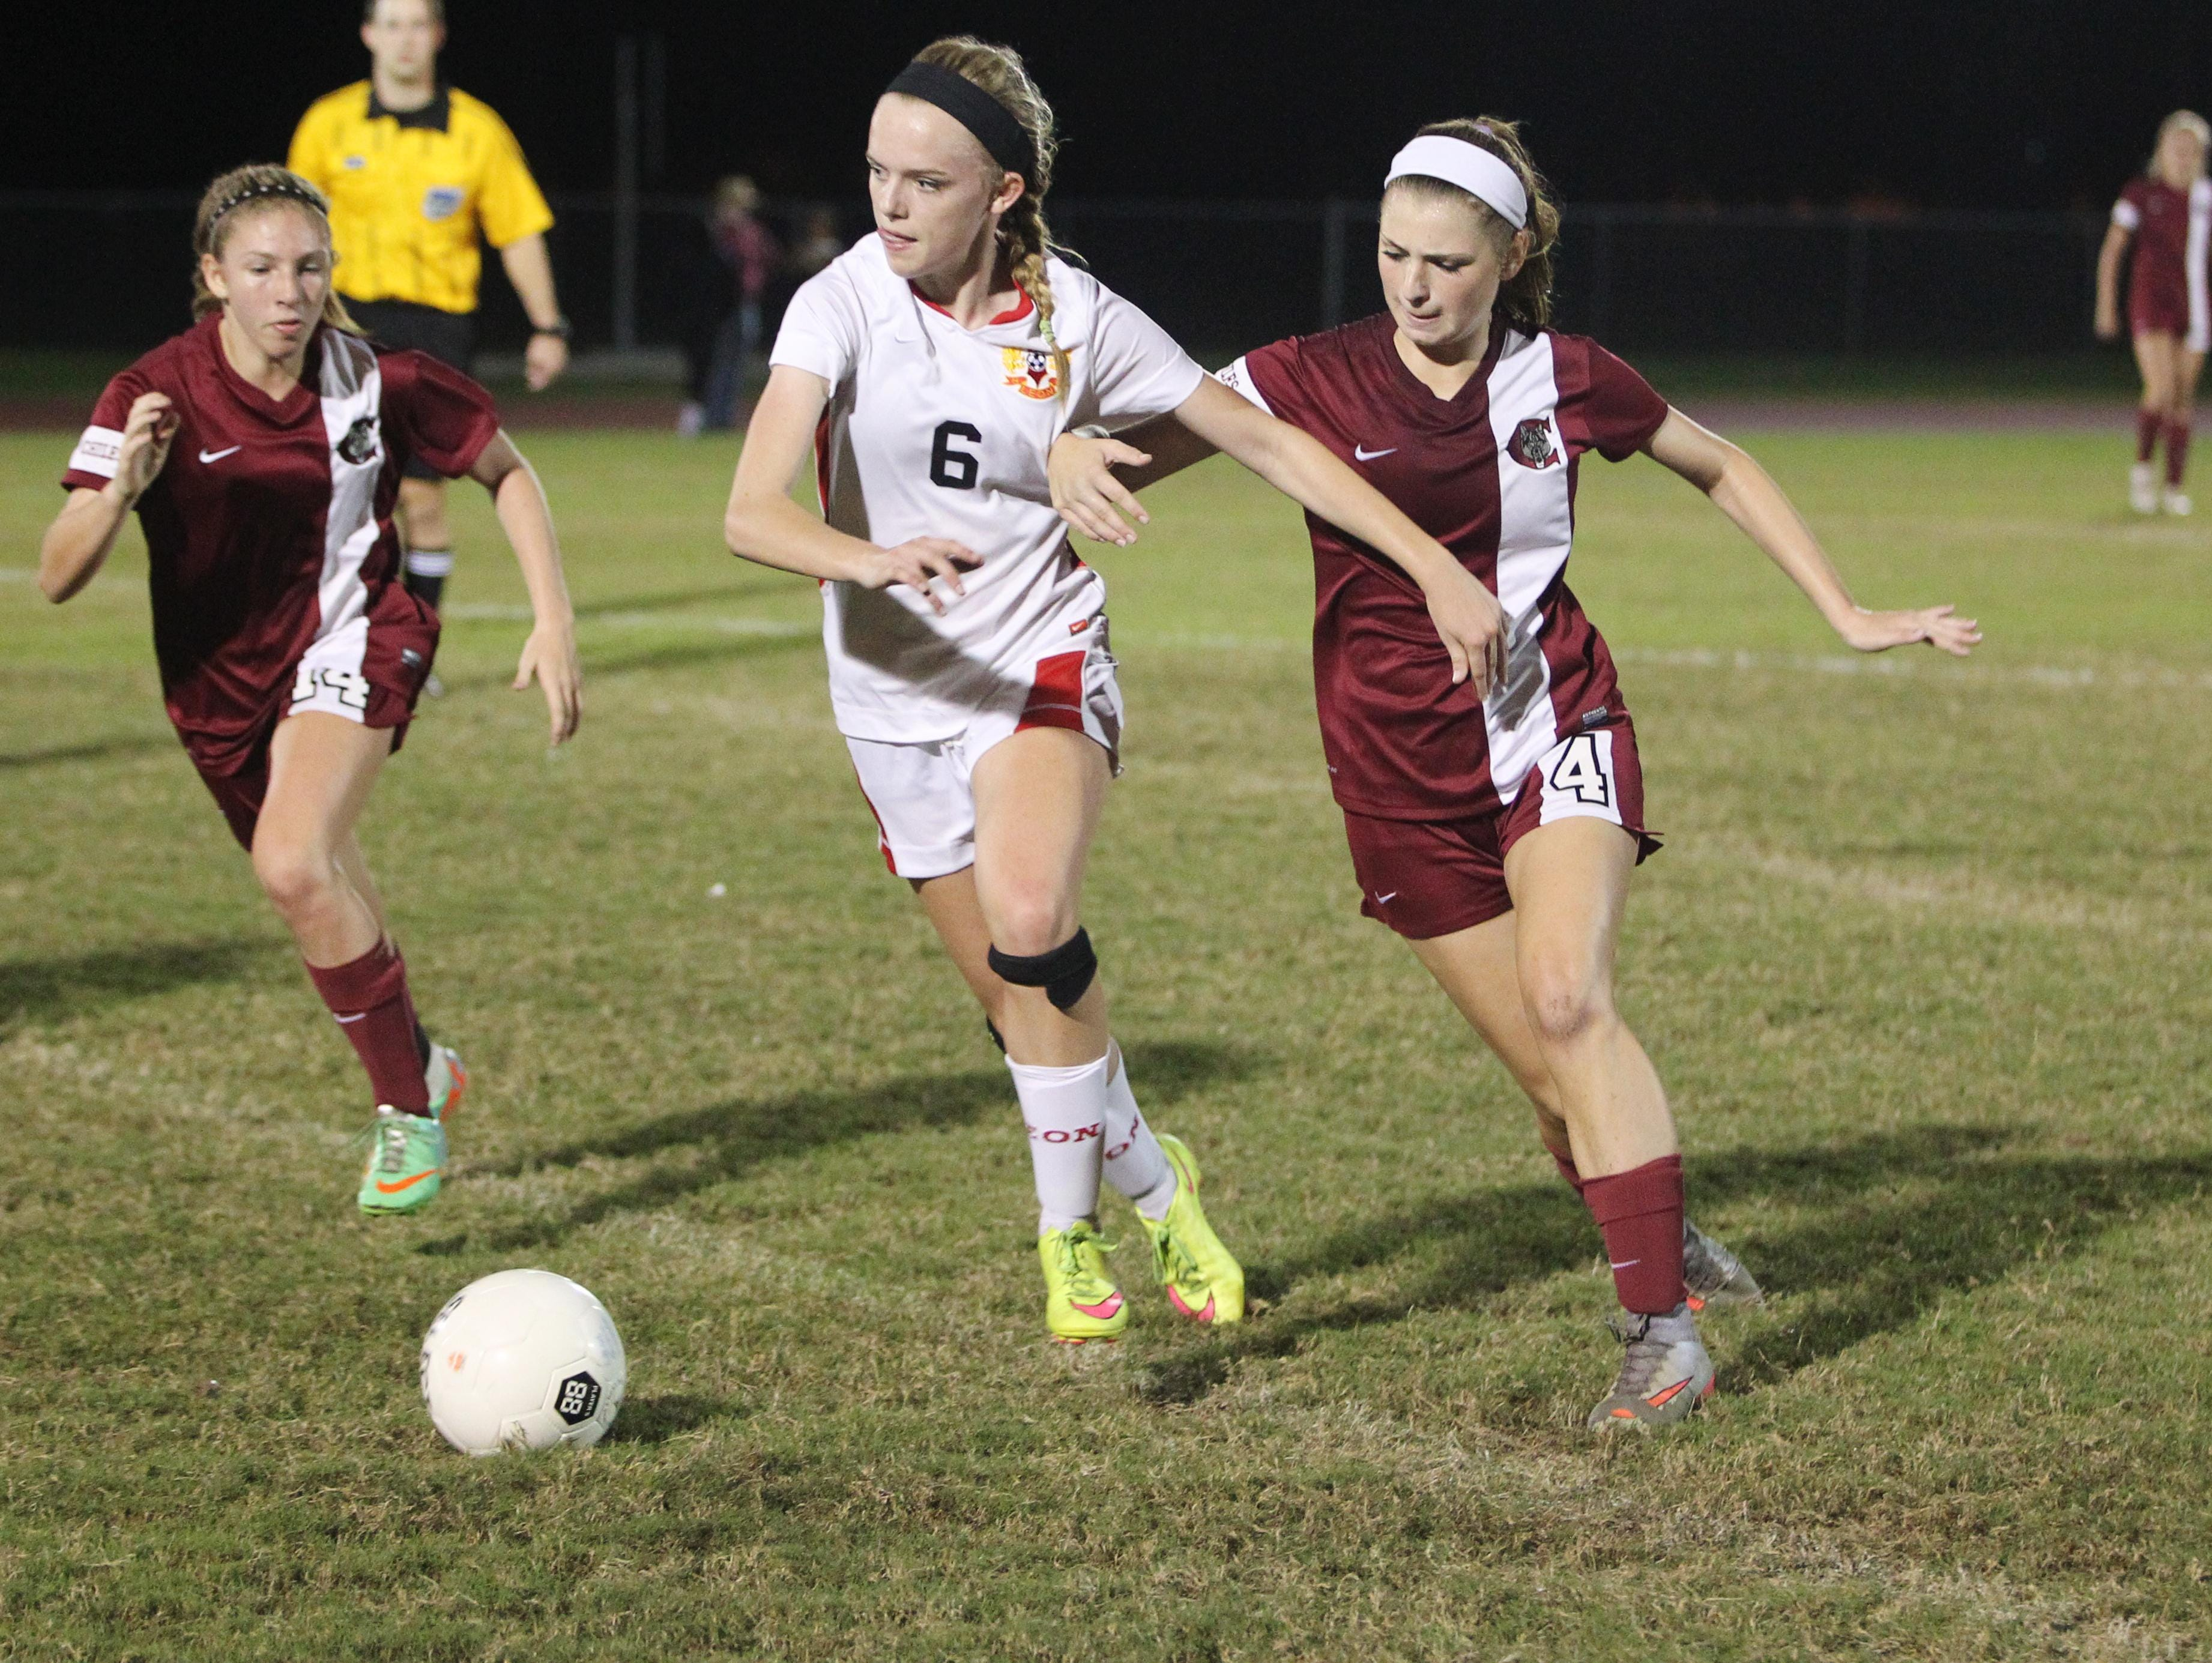 Leon sophomore Maddie Powell eyes a pass during a game against Chiles on Tuesday night. Powell has switched to the midfield after scoring over 20 goals as a forward last year. The Lions won 3-0 last night and Powell had a goal on a header.